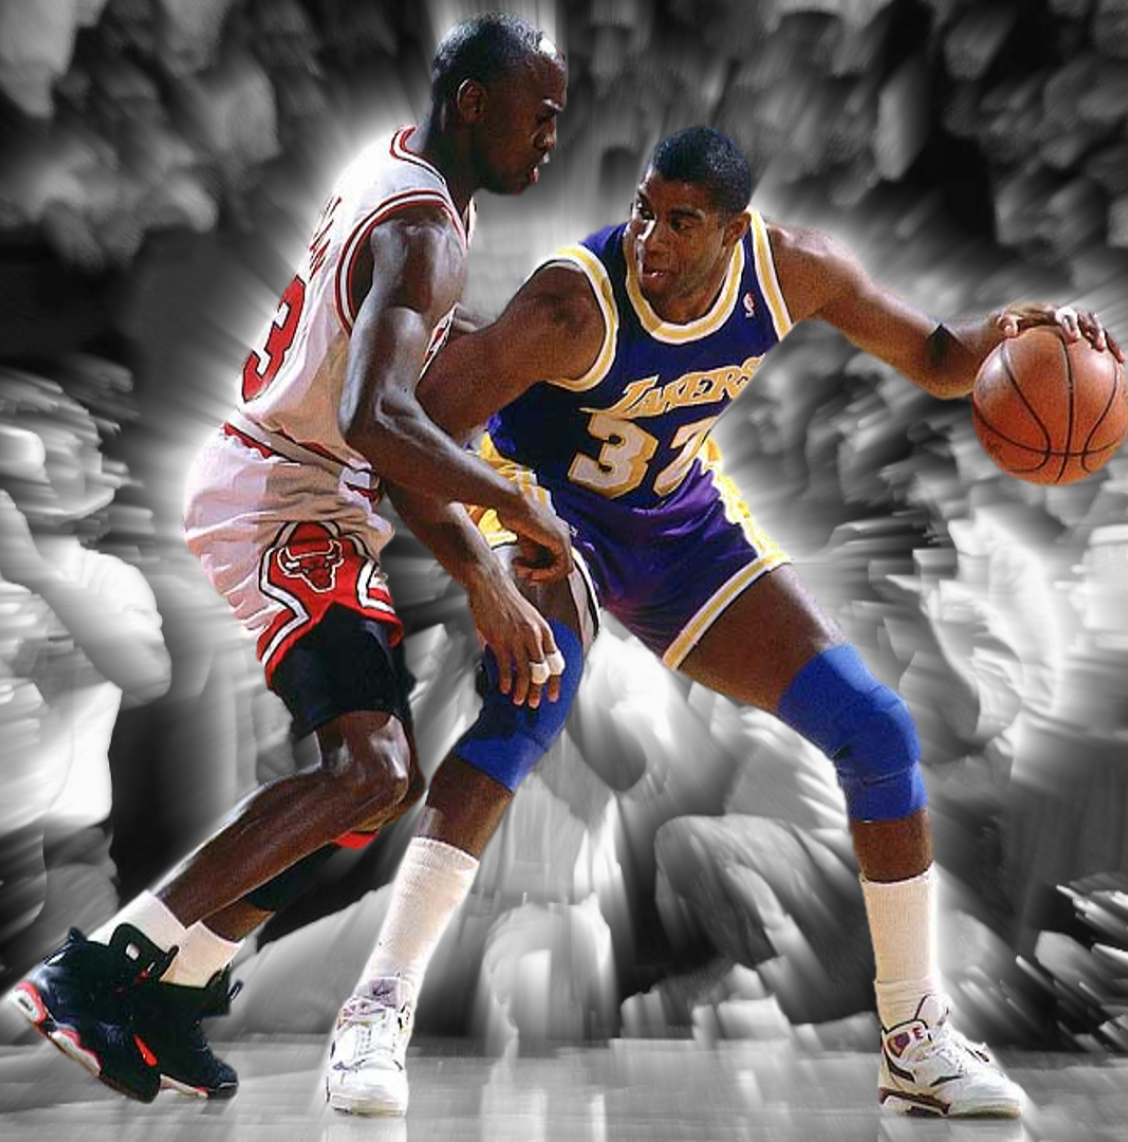 magic johnson pass - photo #12